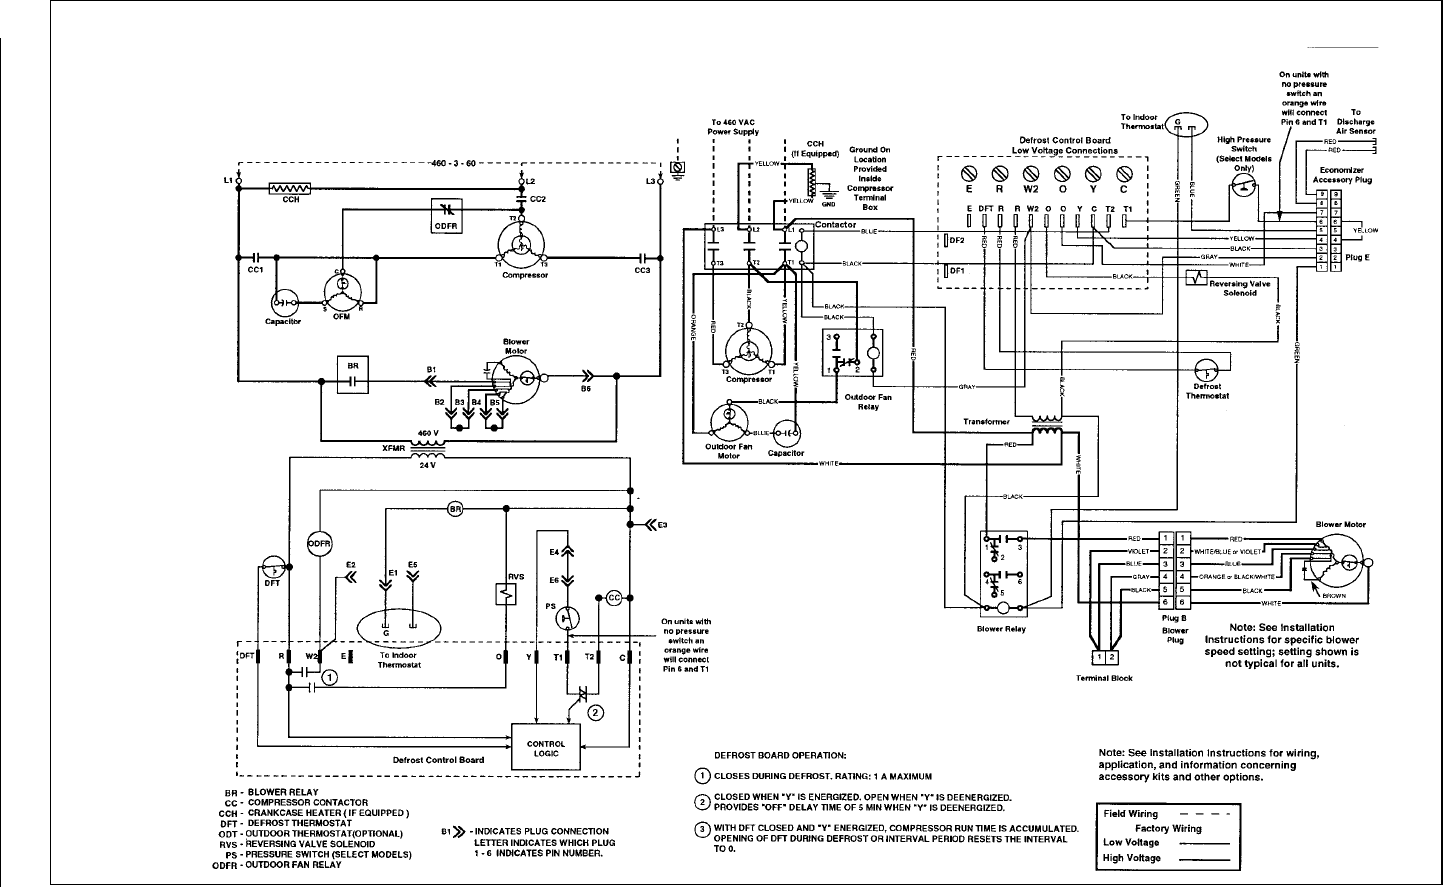 12ef14e5 f0fc 4598 8d26 d64902da494b bg12 wiring diagram for coleman furnace the wiring diagram nordyne heat pump wiring diagram at reclaimingppi.co